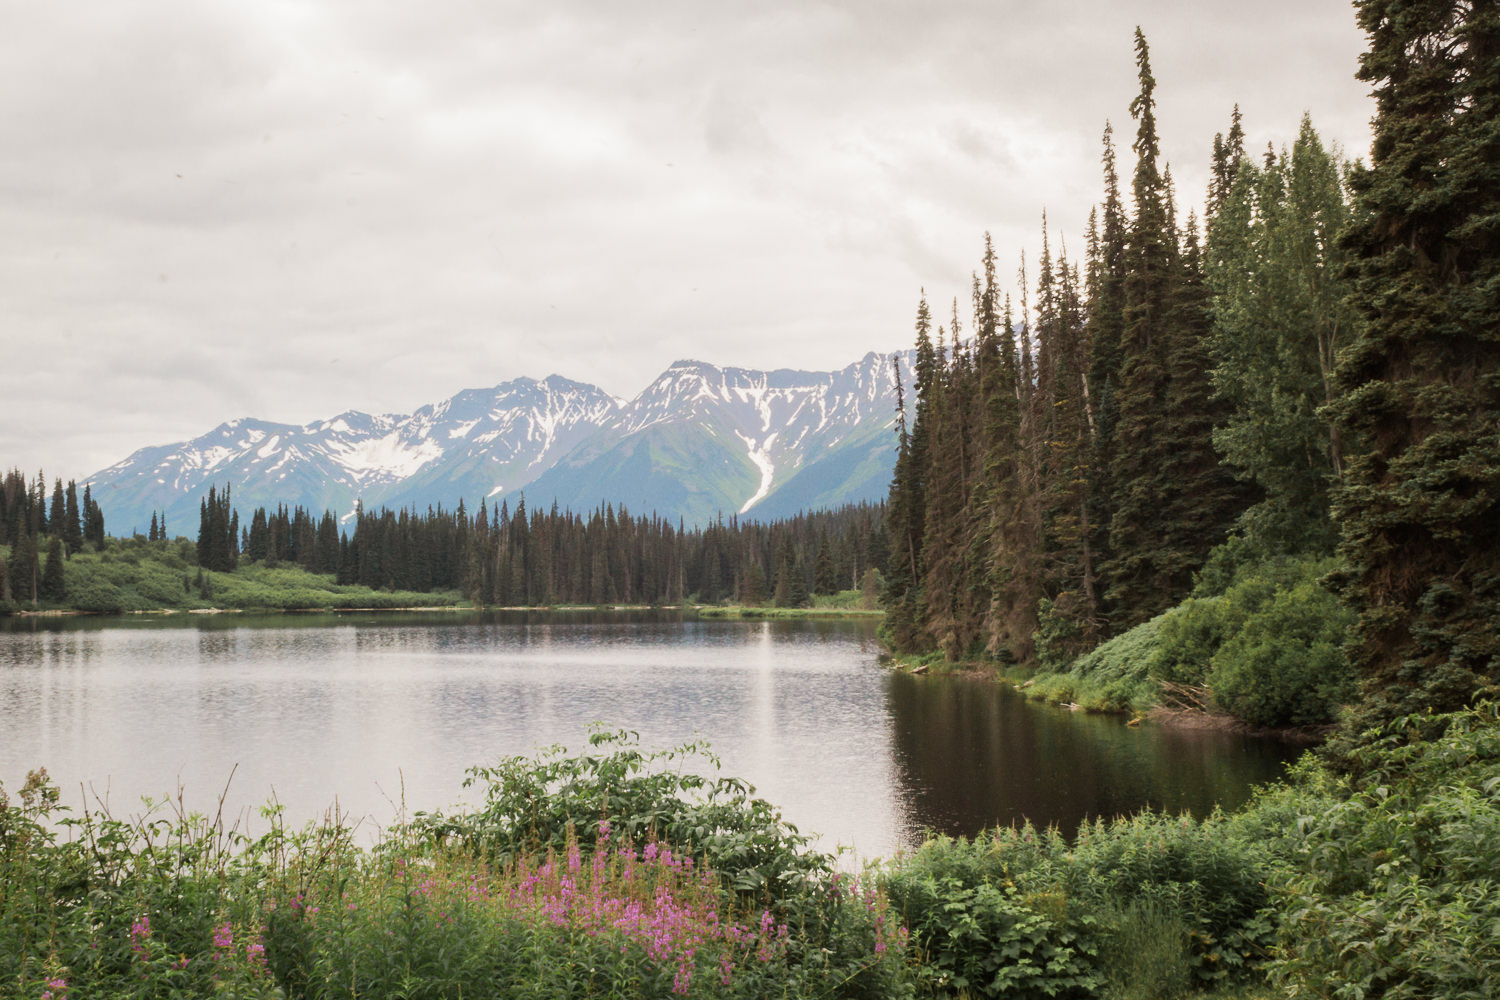 Pull off the Cassiar and you're greeted with views like this.